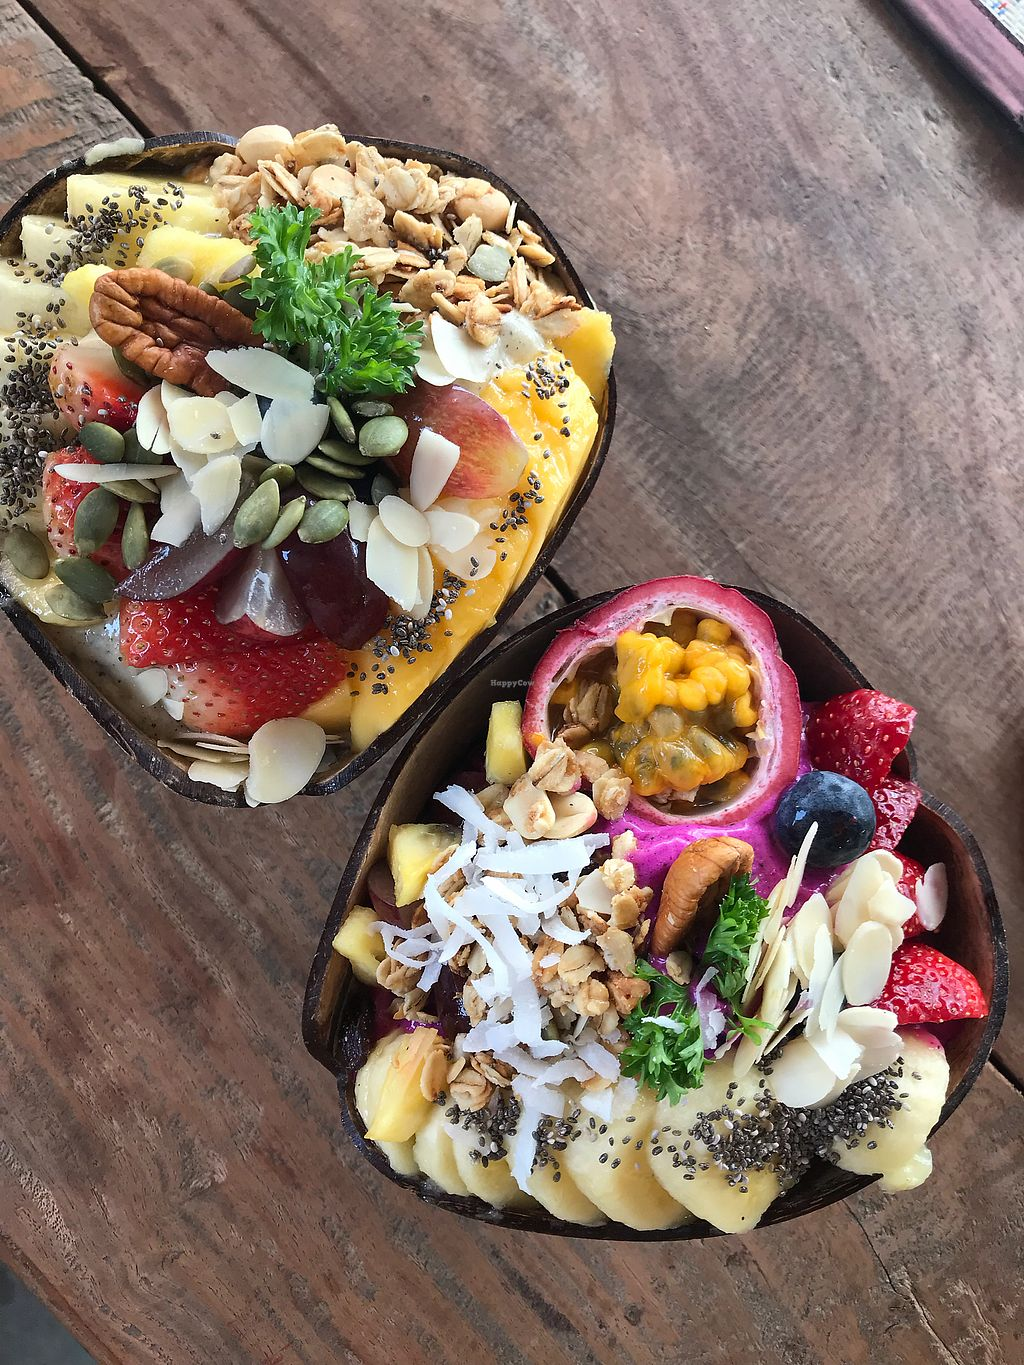 """Photo of Full Moon Wellness Cafe  by <a href=""""/members/profile/sinasamira"""">sinasamira</a> <br/>delicious bowls <br/> March 3, 2018  - <a href='/contact/abuse/image/110705/366029'>Report</a>"""